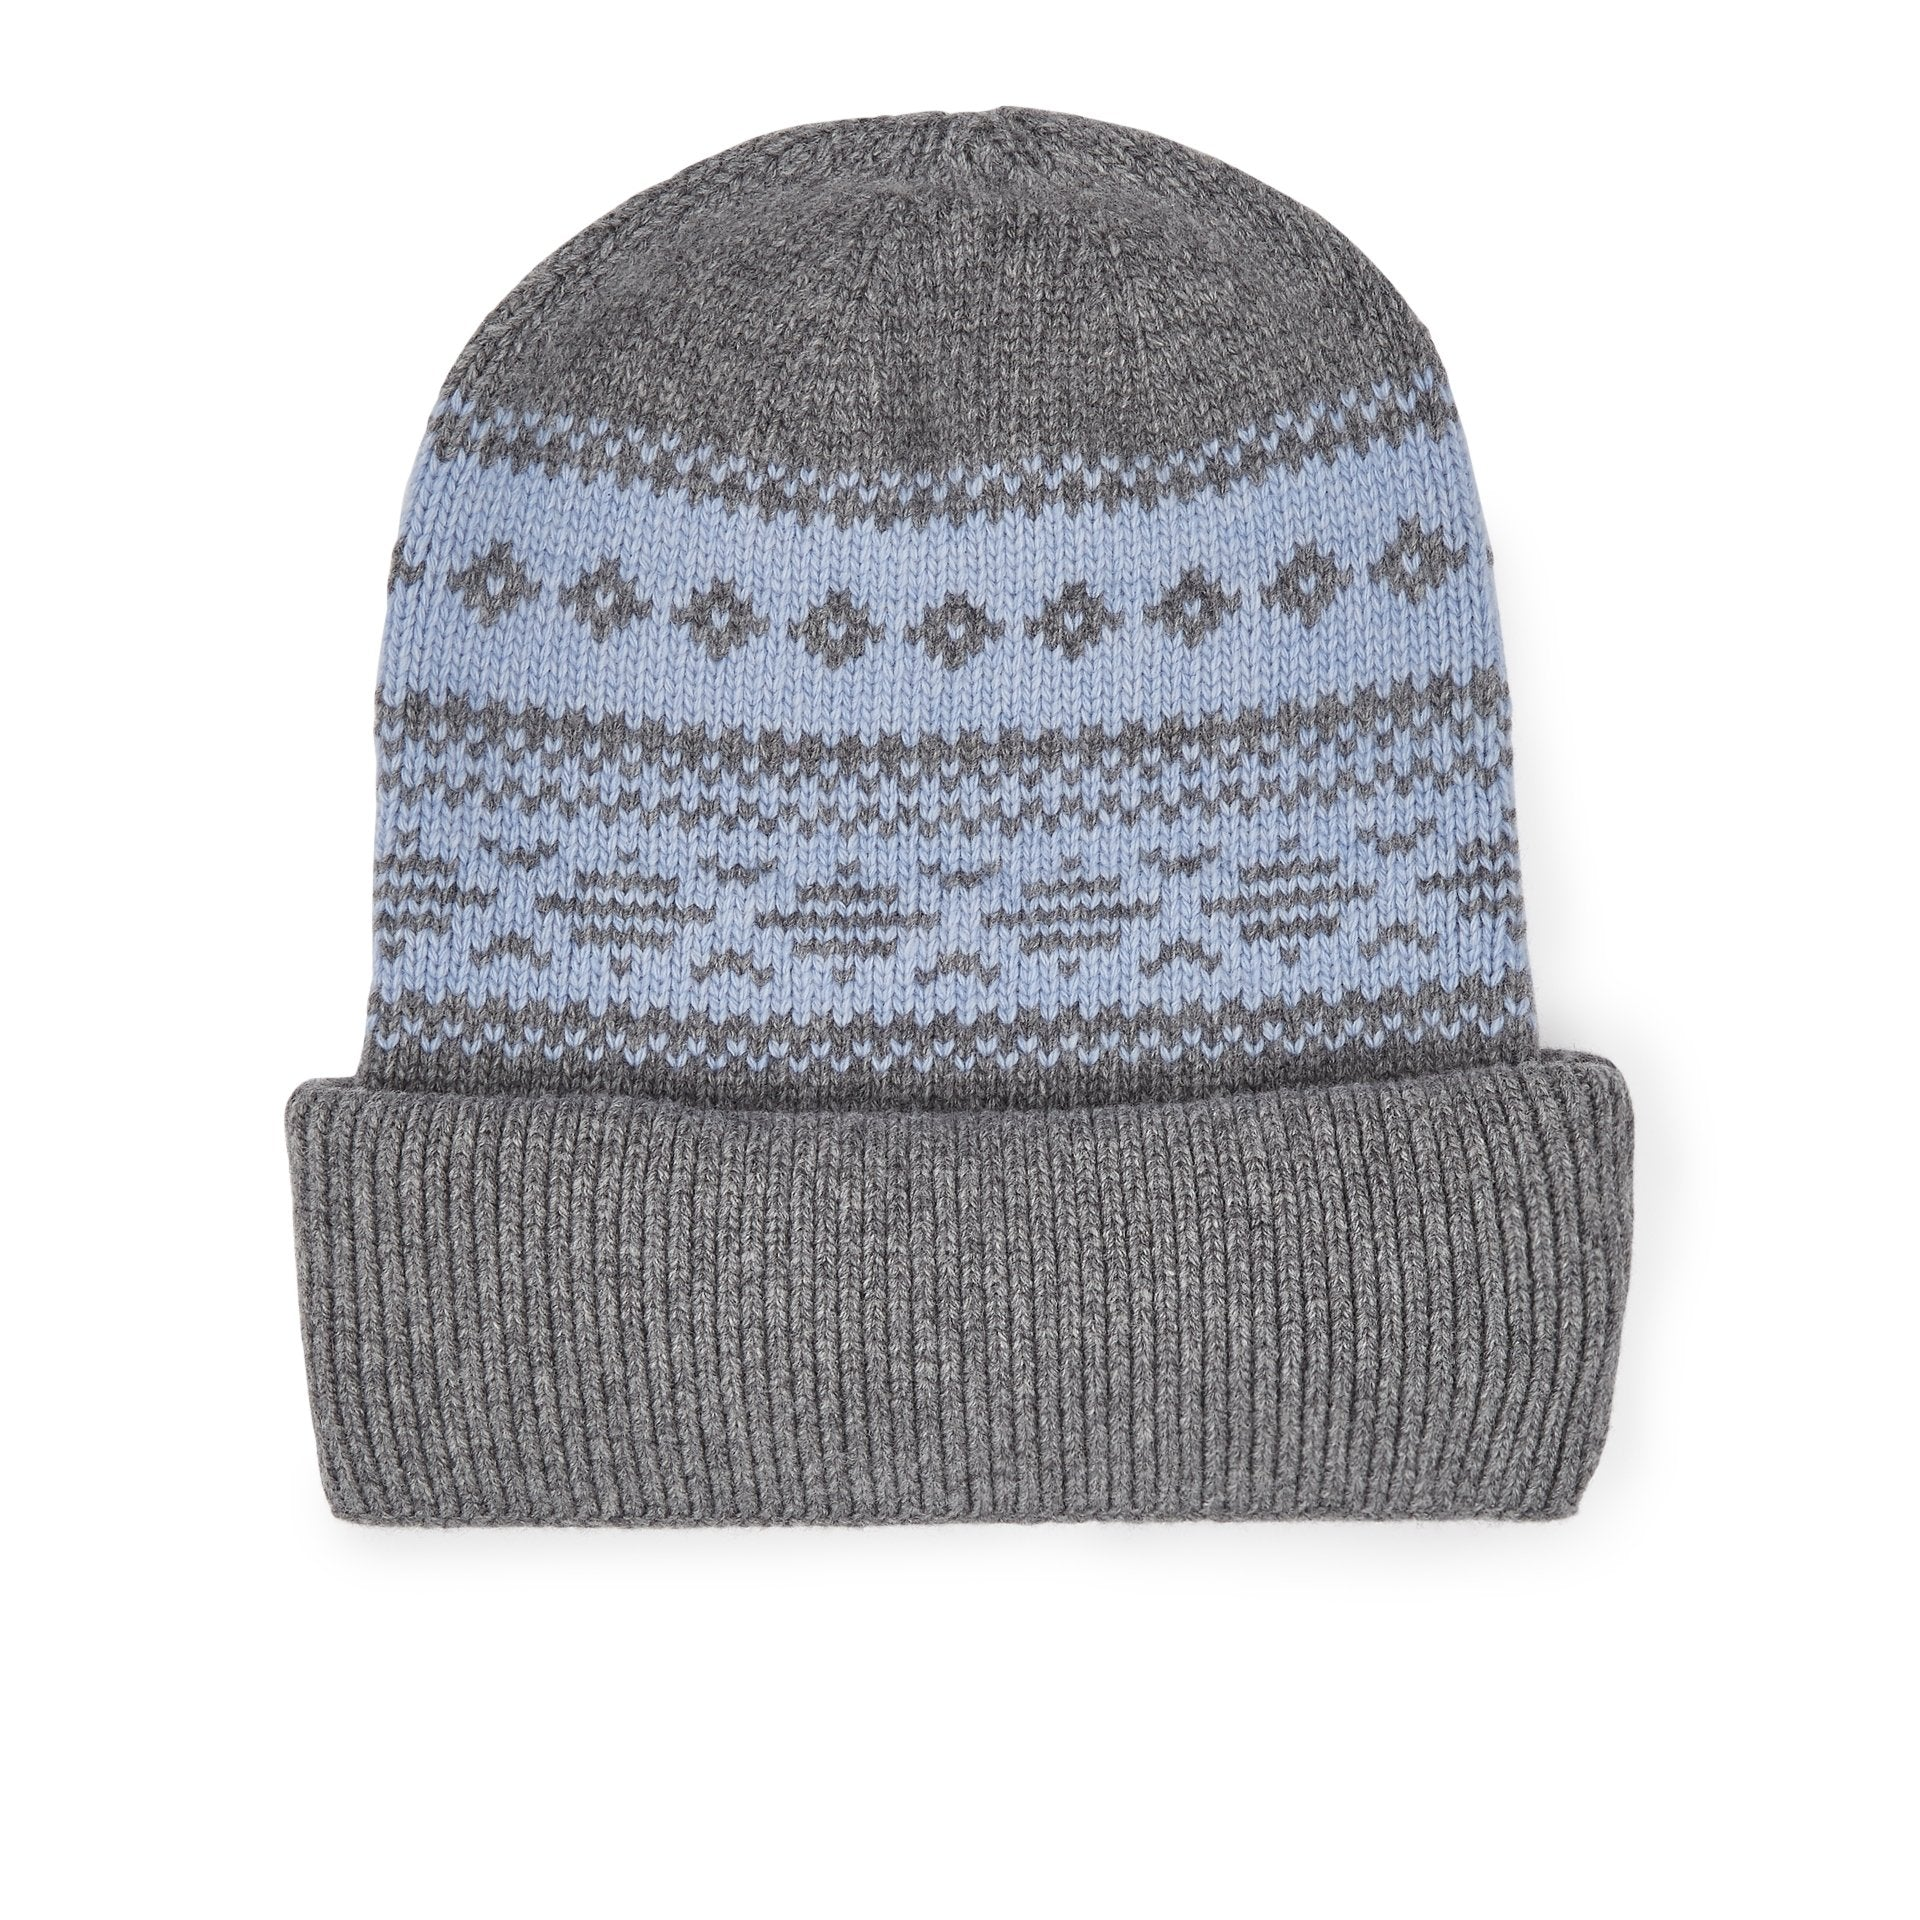 Rosehall Cashmere beanie - Women's Beanies - Lock & Co. Hatters London UK